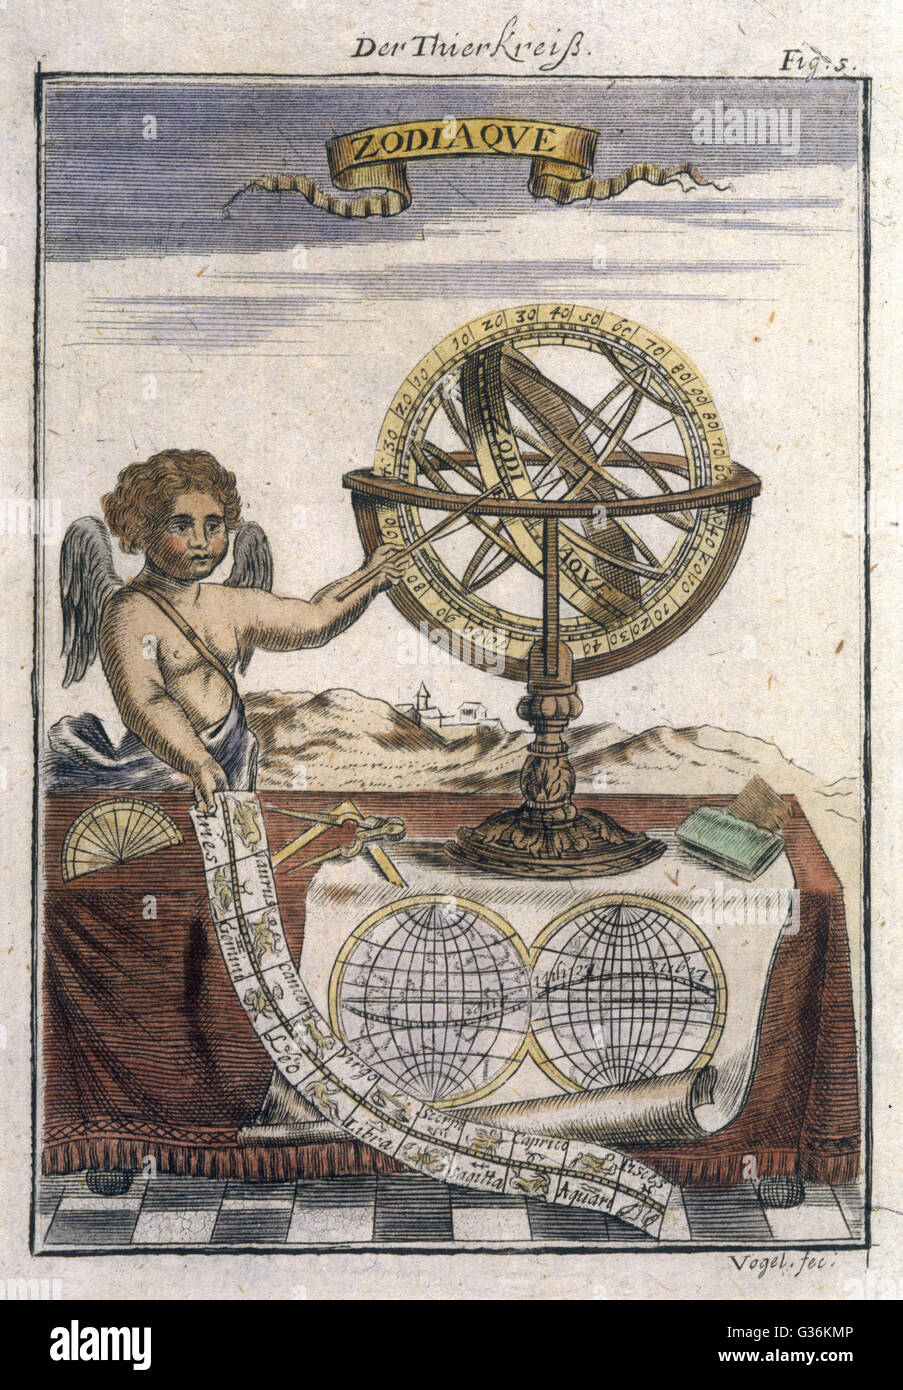 Allegorical depiction of the Zodiac from the 17th century     Date: 17th century - Stock Image